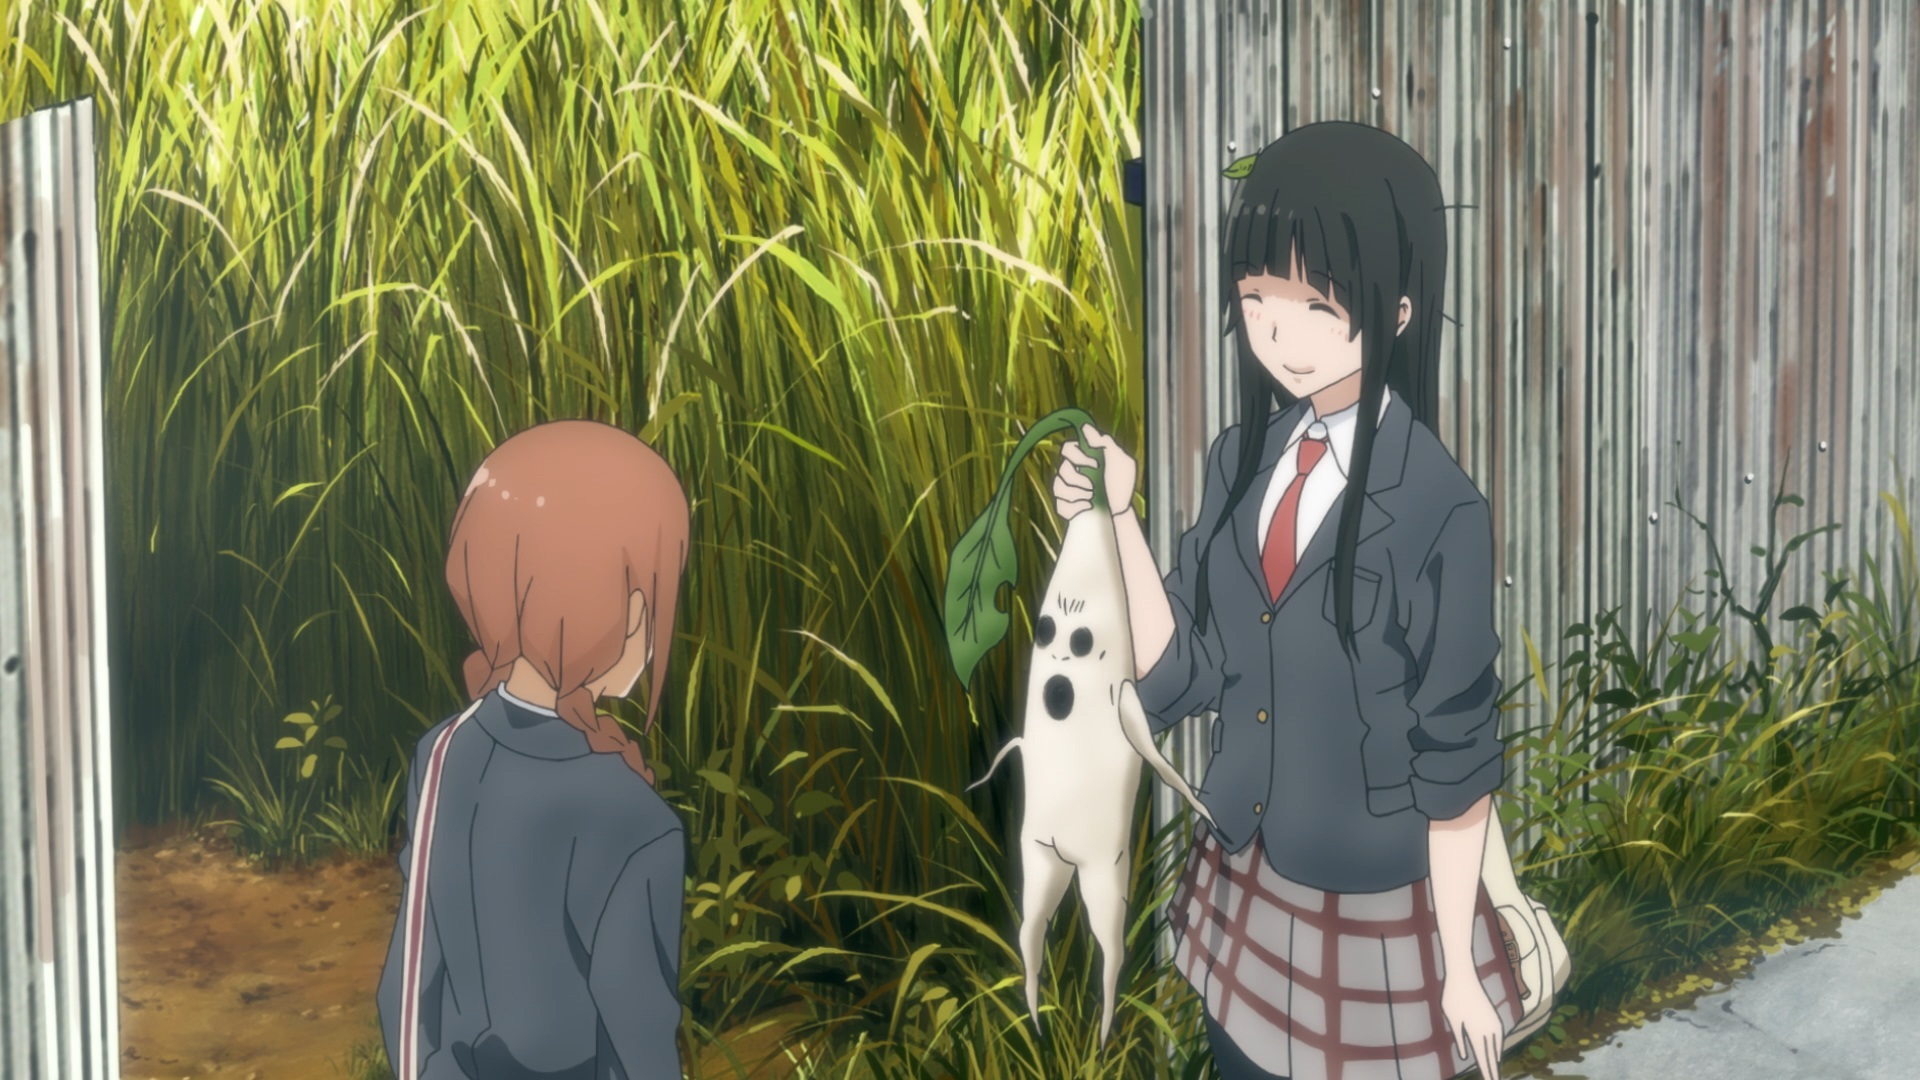 Makoto Kowata offers her friend Nao Ishiwatari a hideous mandrake root in a scene from the Flying Witch TV anime.